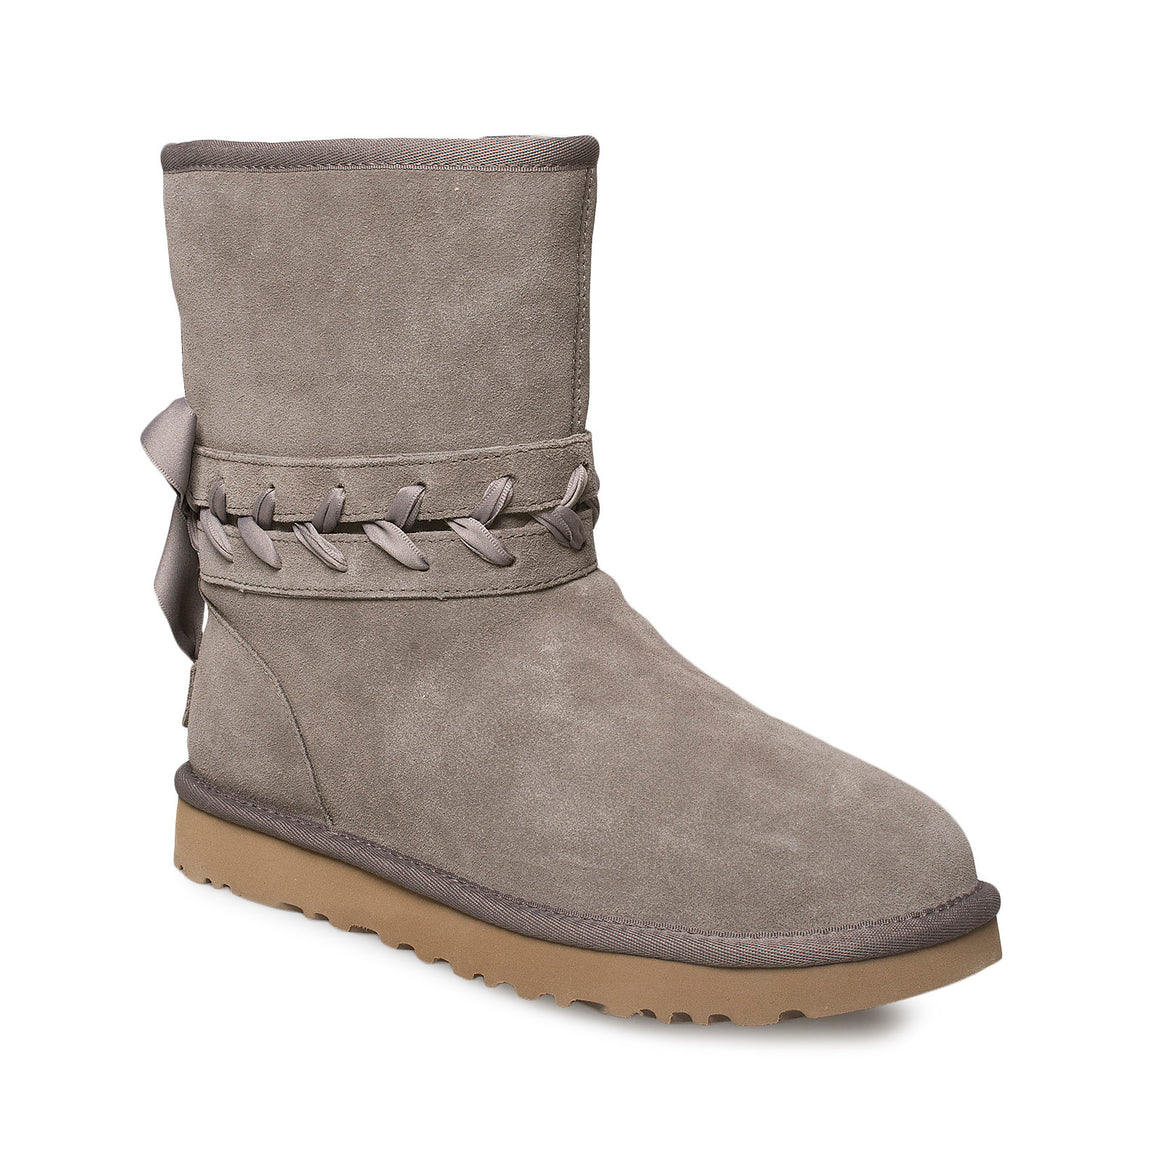 UGG Classic Lace Short Mole Boots - Women's